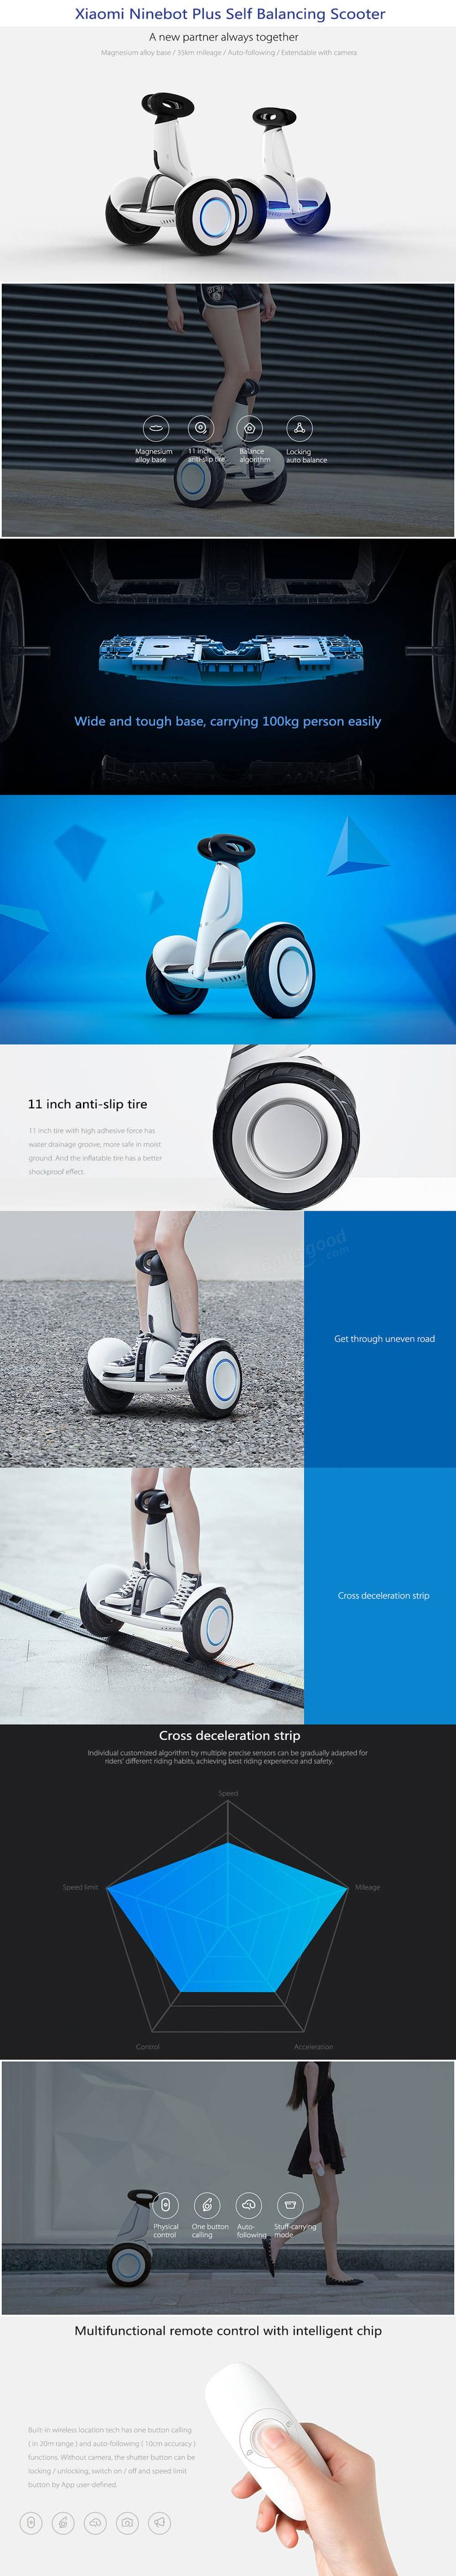 Xiaomi Ninebot Plus N4M340 11 inch Electric Bluetooth Self Balancing Scooter 400W x 2 18km/h Max Speed  #sports #outdoor #cycling